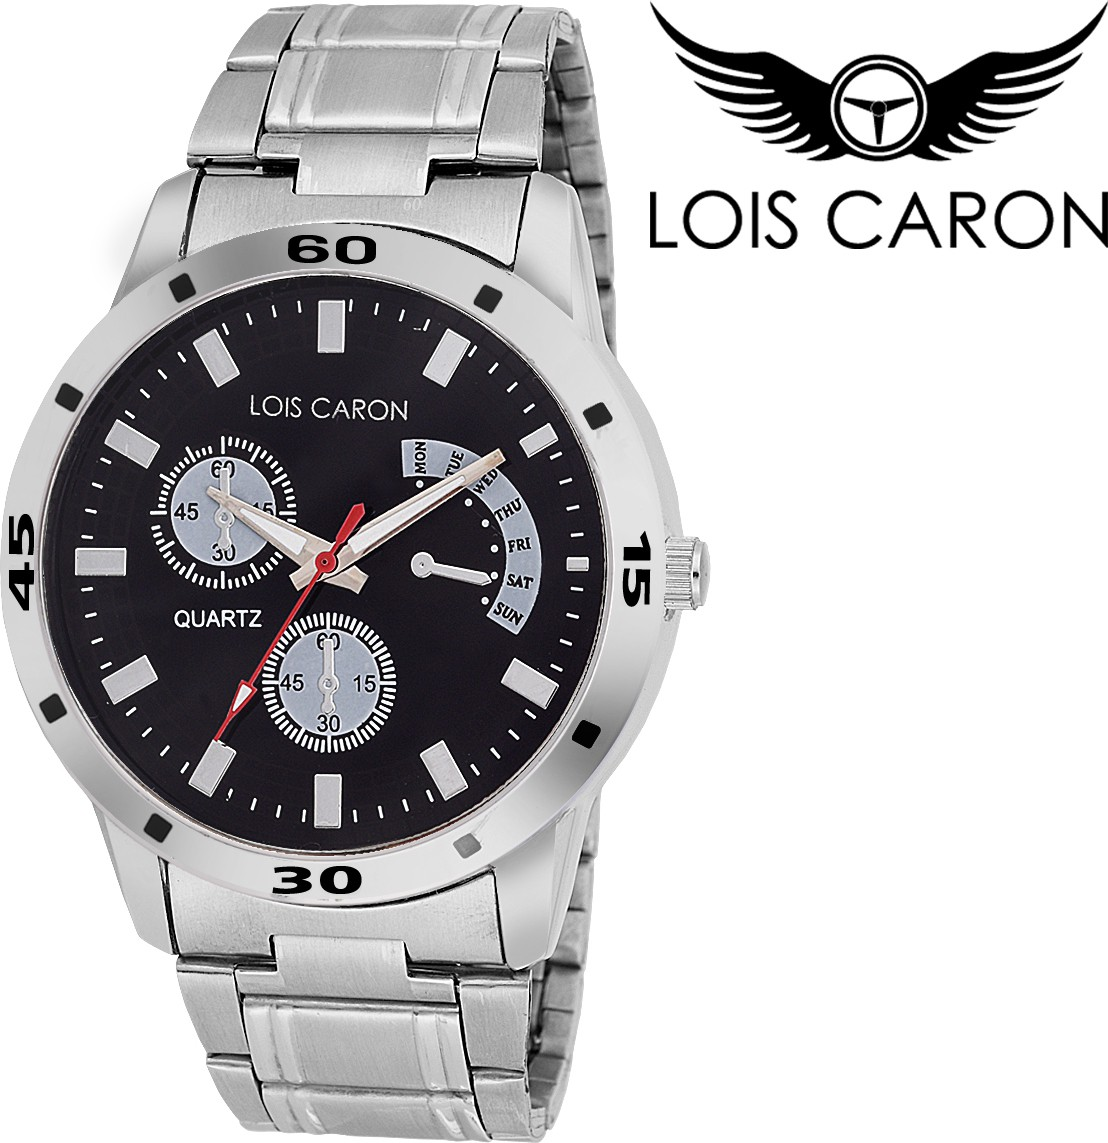 Flipkart - Watches Lois Caron & more